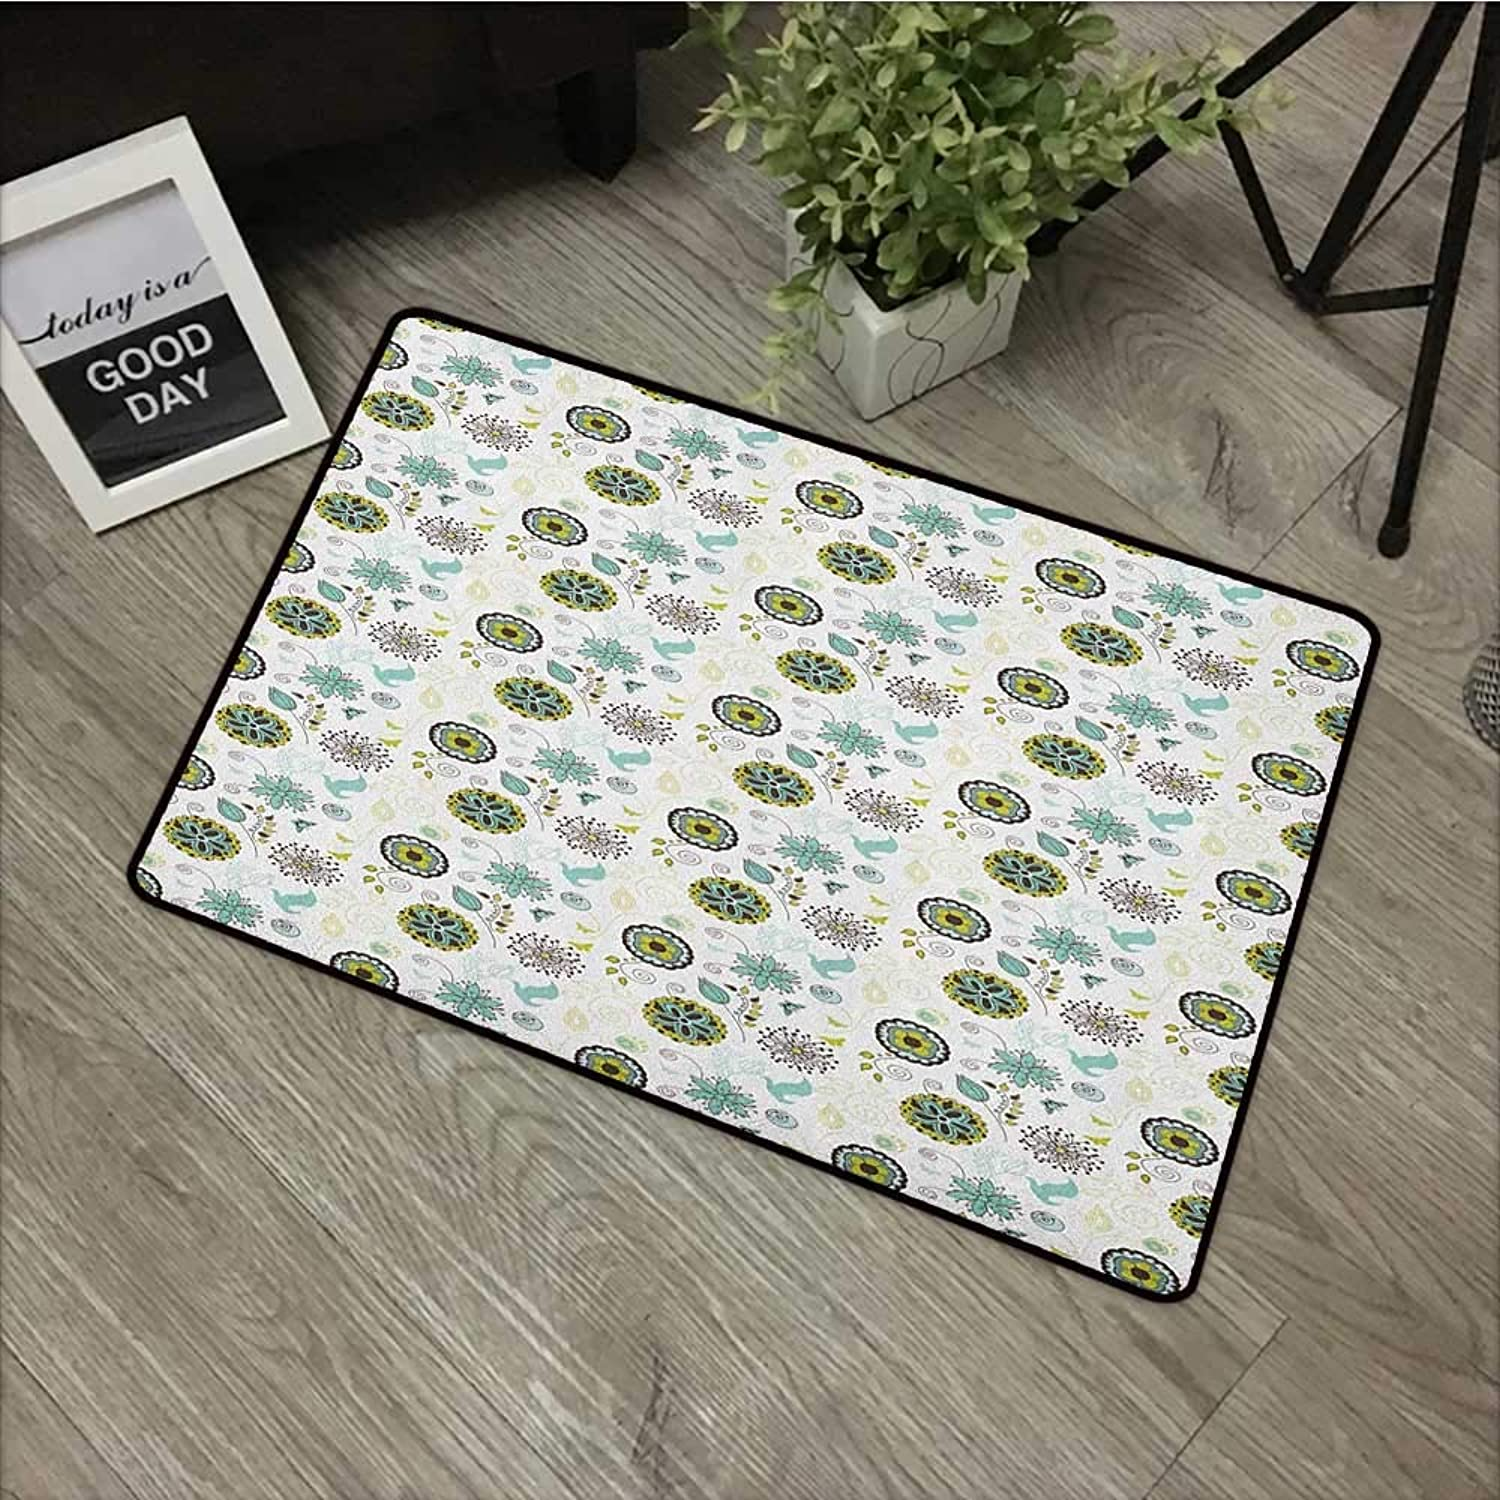 Clear Printed Pattern Door mat W35 x L59 INCH Floral,Bird and Butterfly Silhouettes with Flourishing Petals and Leaves Doodle, Apple Green Brown Teal Easy to Clean, no Deformation, no Fading Non-Slip